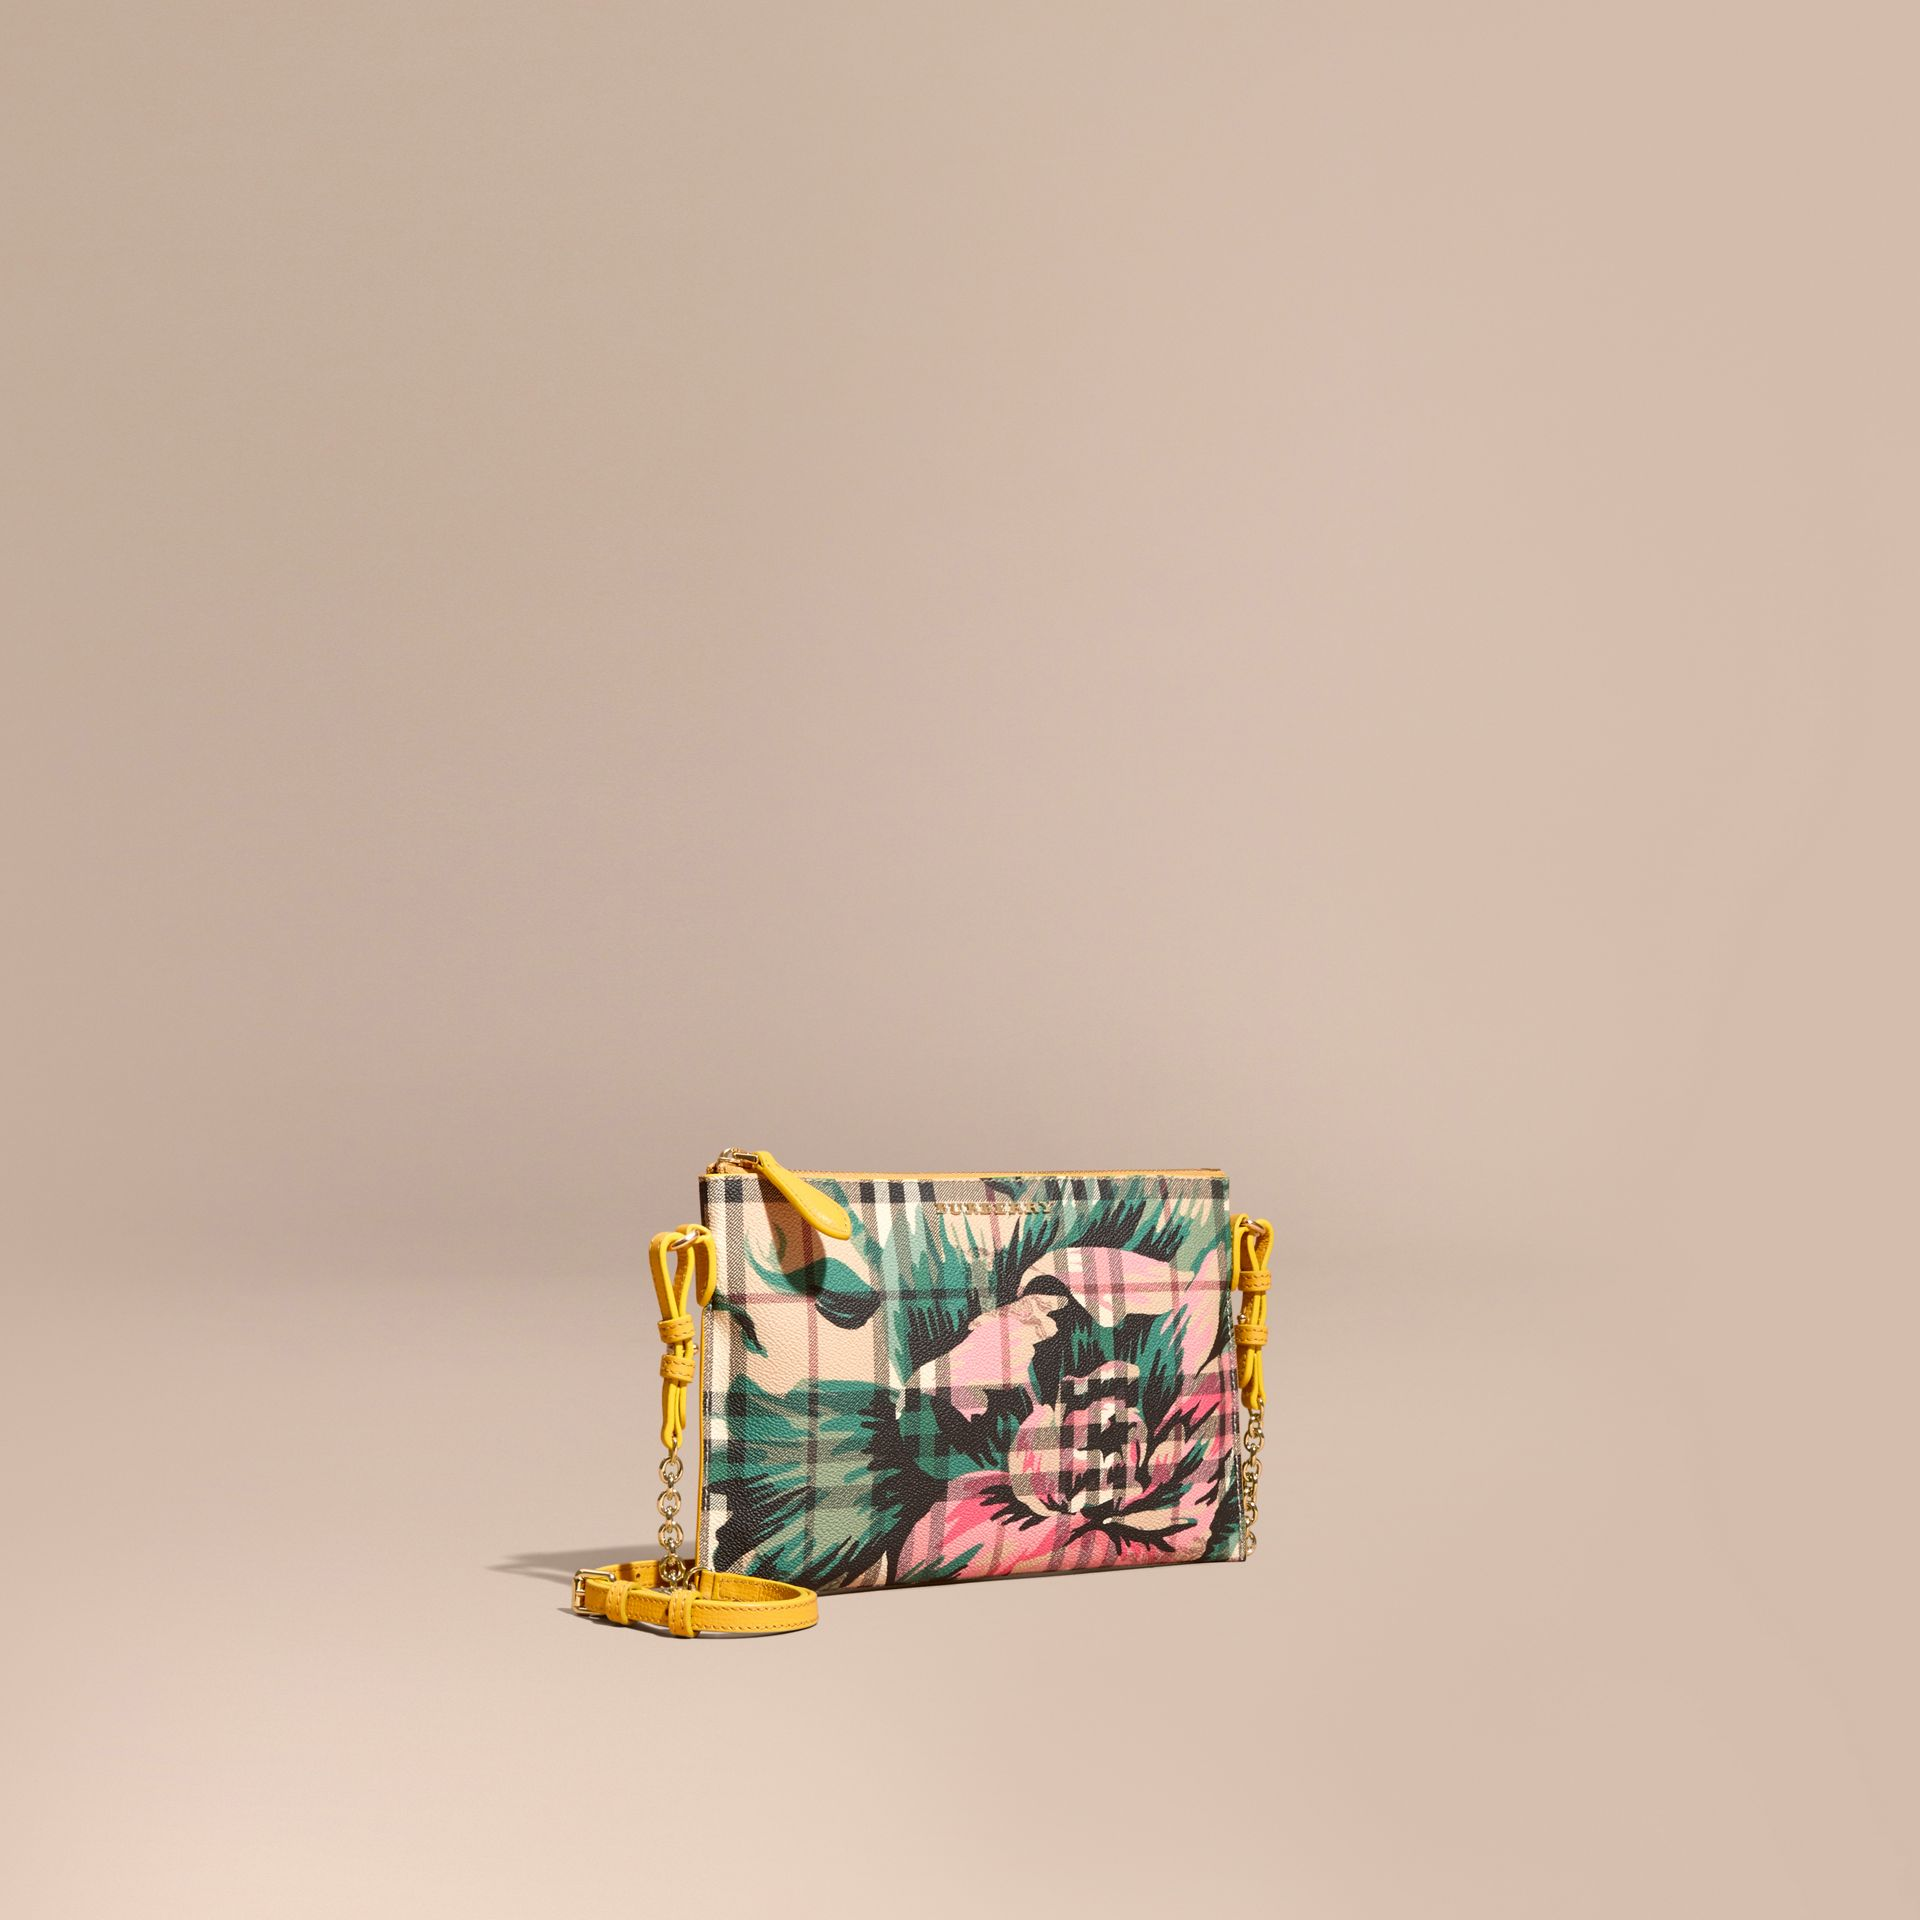 Larch yellow/emerald green Peony Rose Print Haymarket Check and Leather Clutch Bag Larch Yellow/emerald Green - gallery image 1